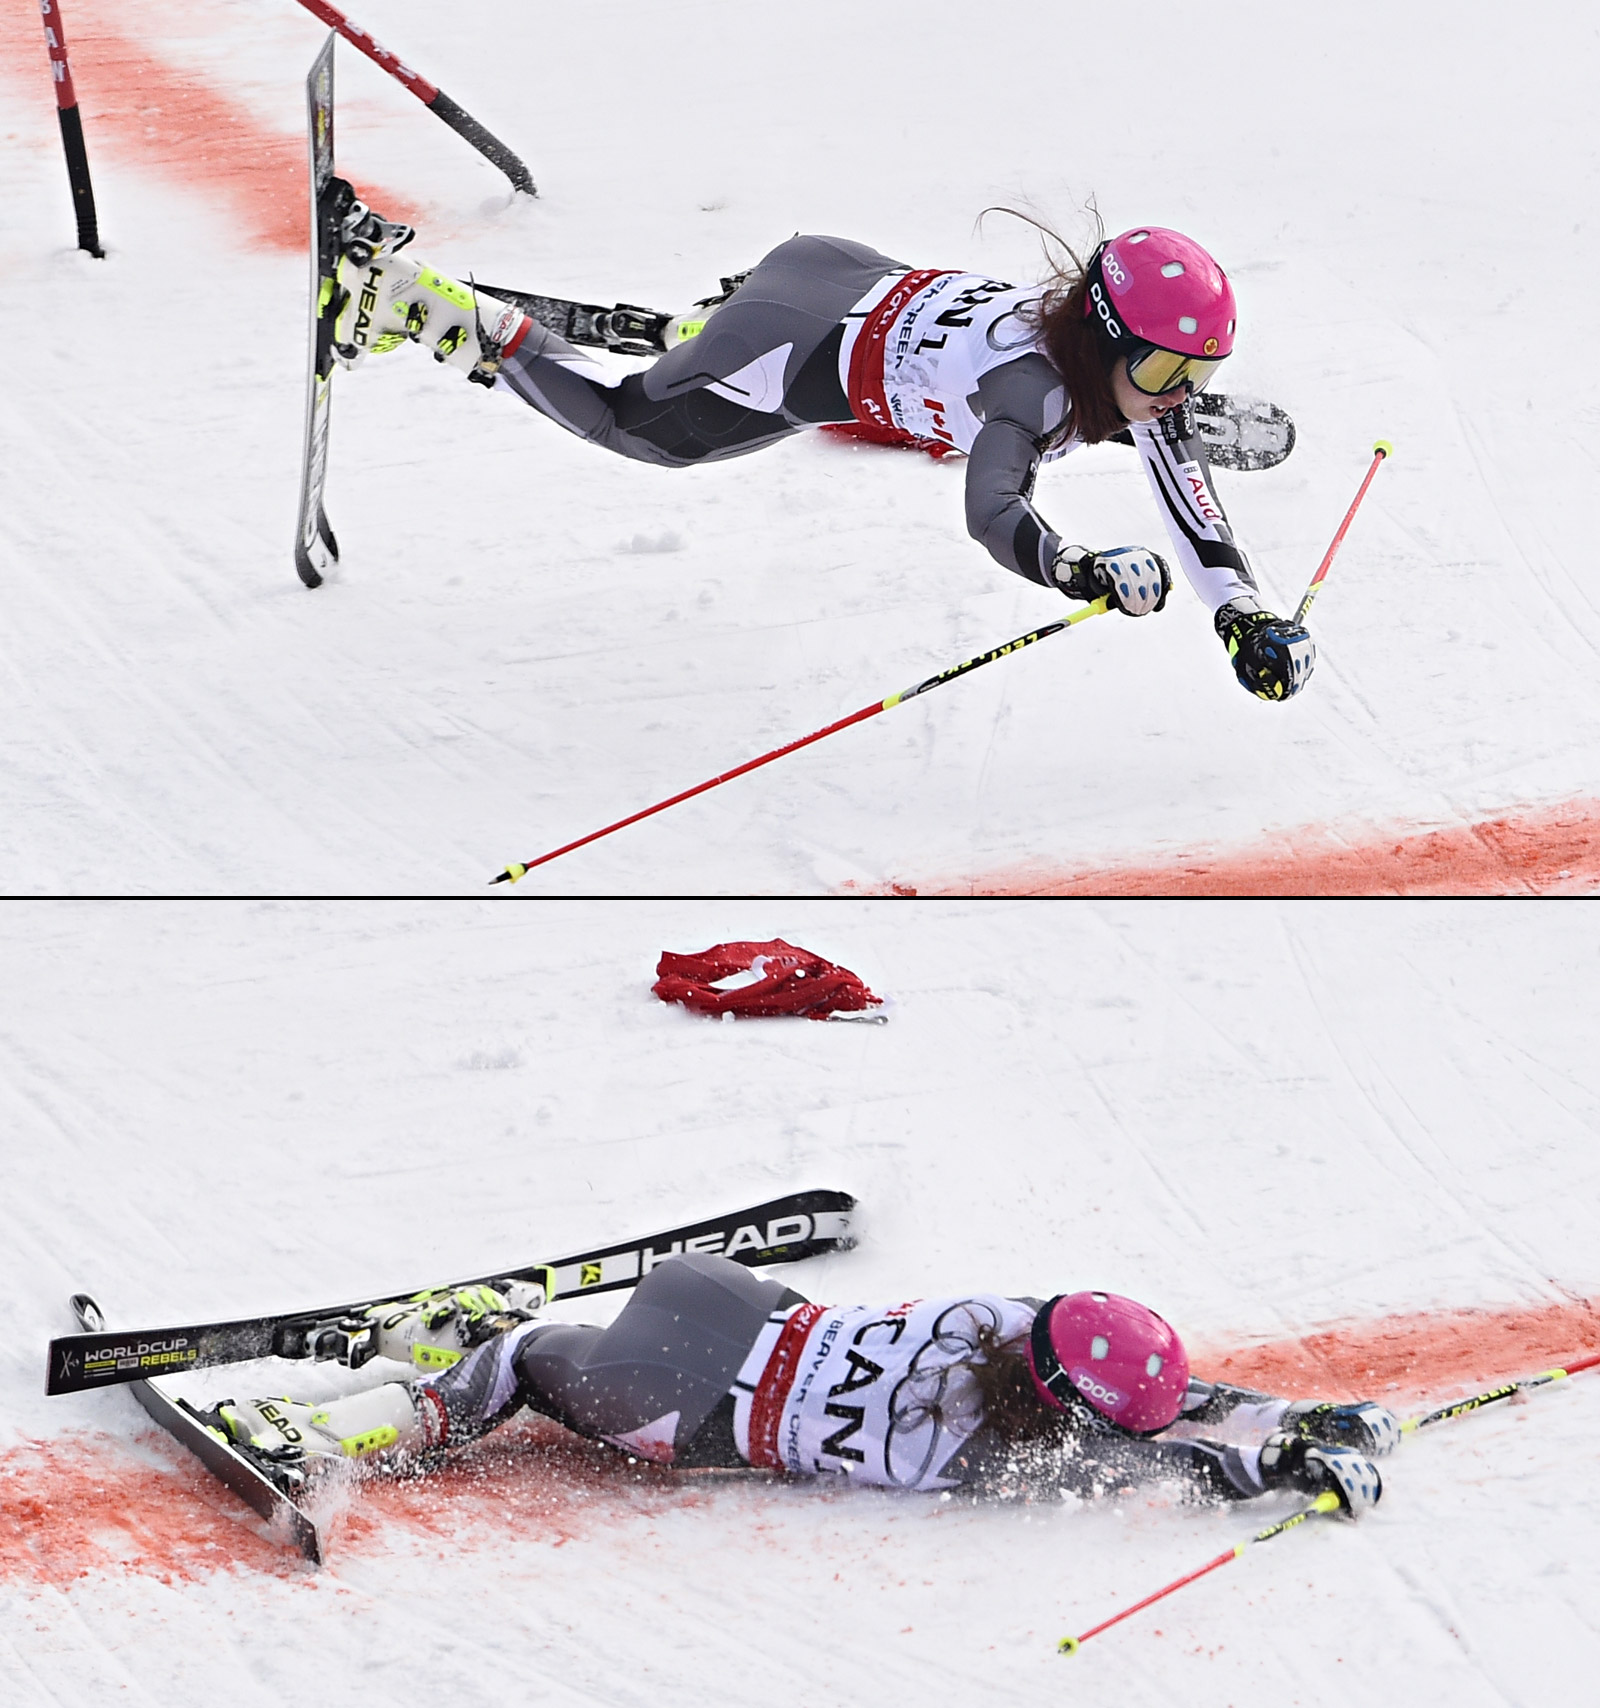 Candace Crawford of Team Canada crashes over the arrival line, yet wins a silver medal during the FIS Alpine World Ski Championships Nations Team Event on February 10, 2015 in Beaver Creek, Colorado. (Photo by Alain Grosclaude/Agence Zoom/Getty Images)